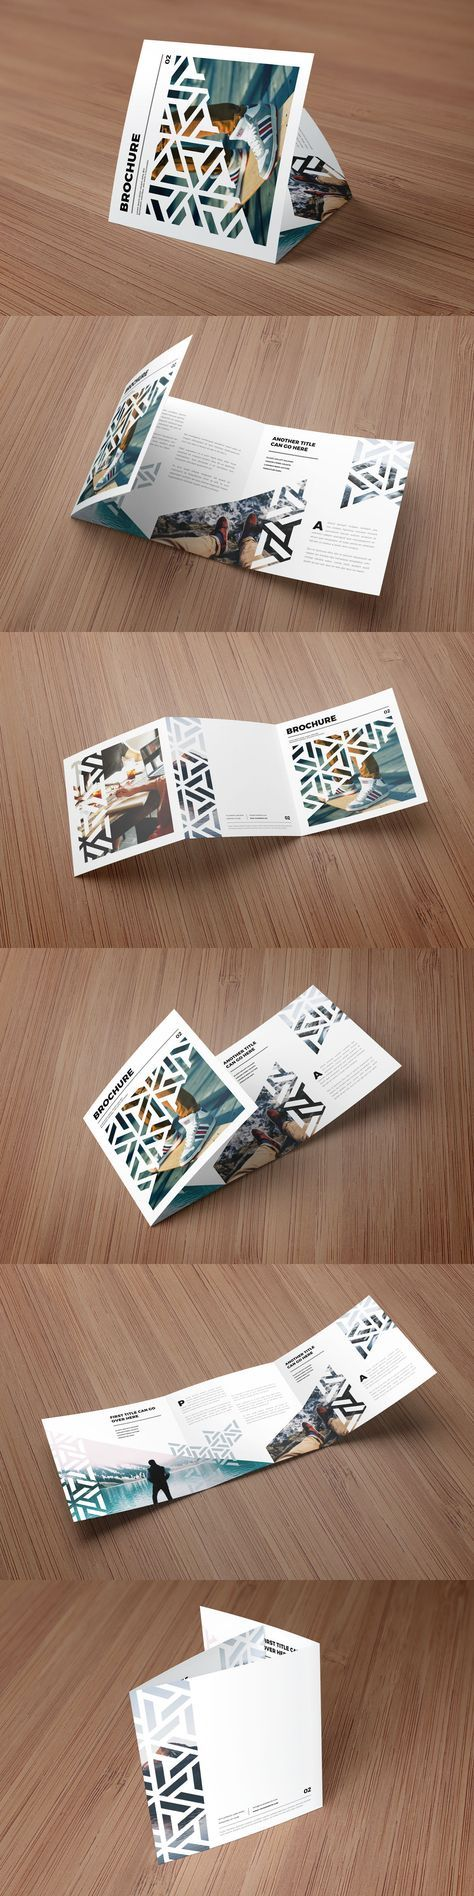 Square Modern Pattern Trifold Brochure Template InDesign INDD ...